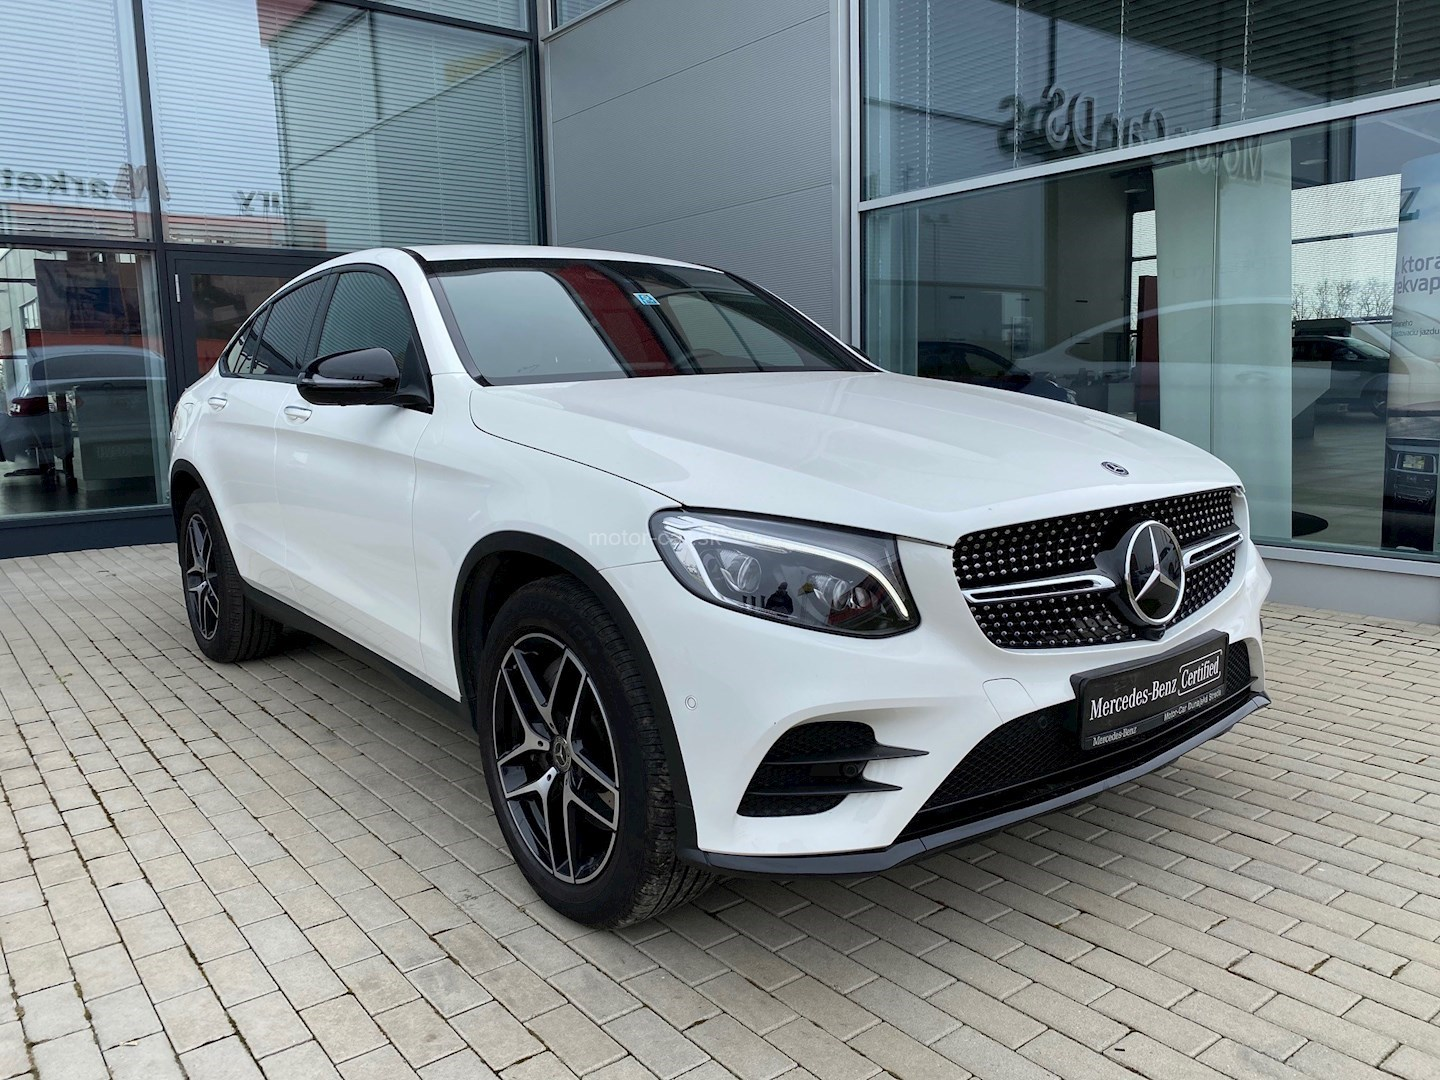 mercedes-benz glc 250d kupé